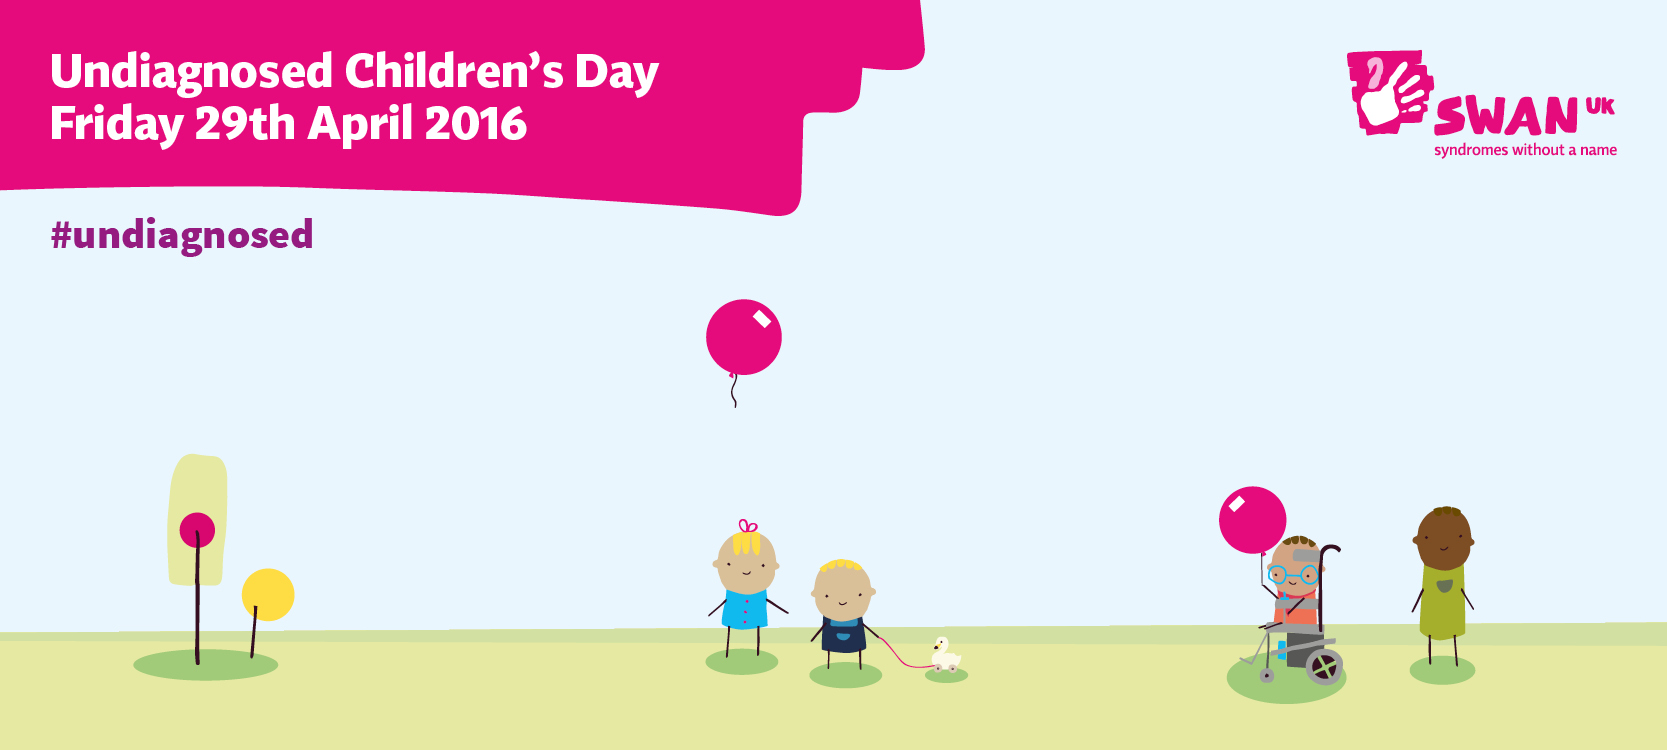 Support SWAN UK on social media this Undiagnosed Children's Day